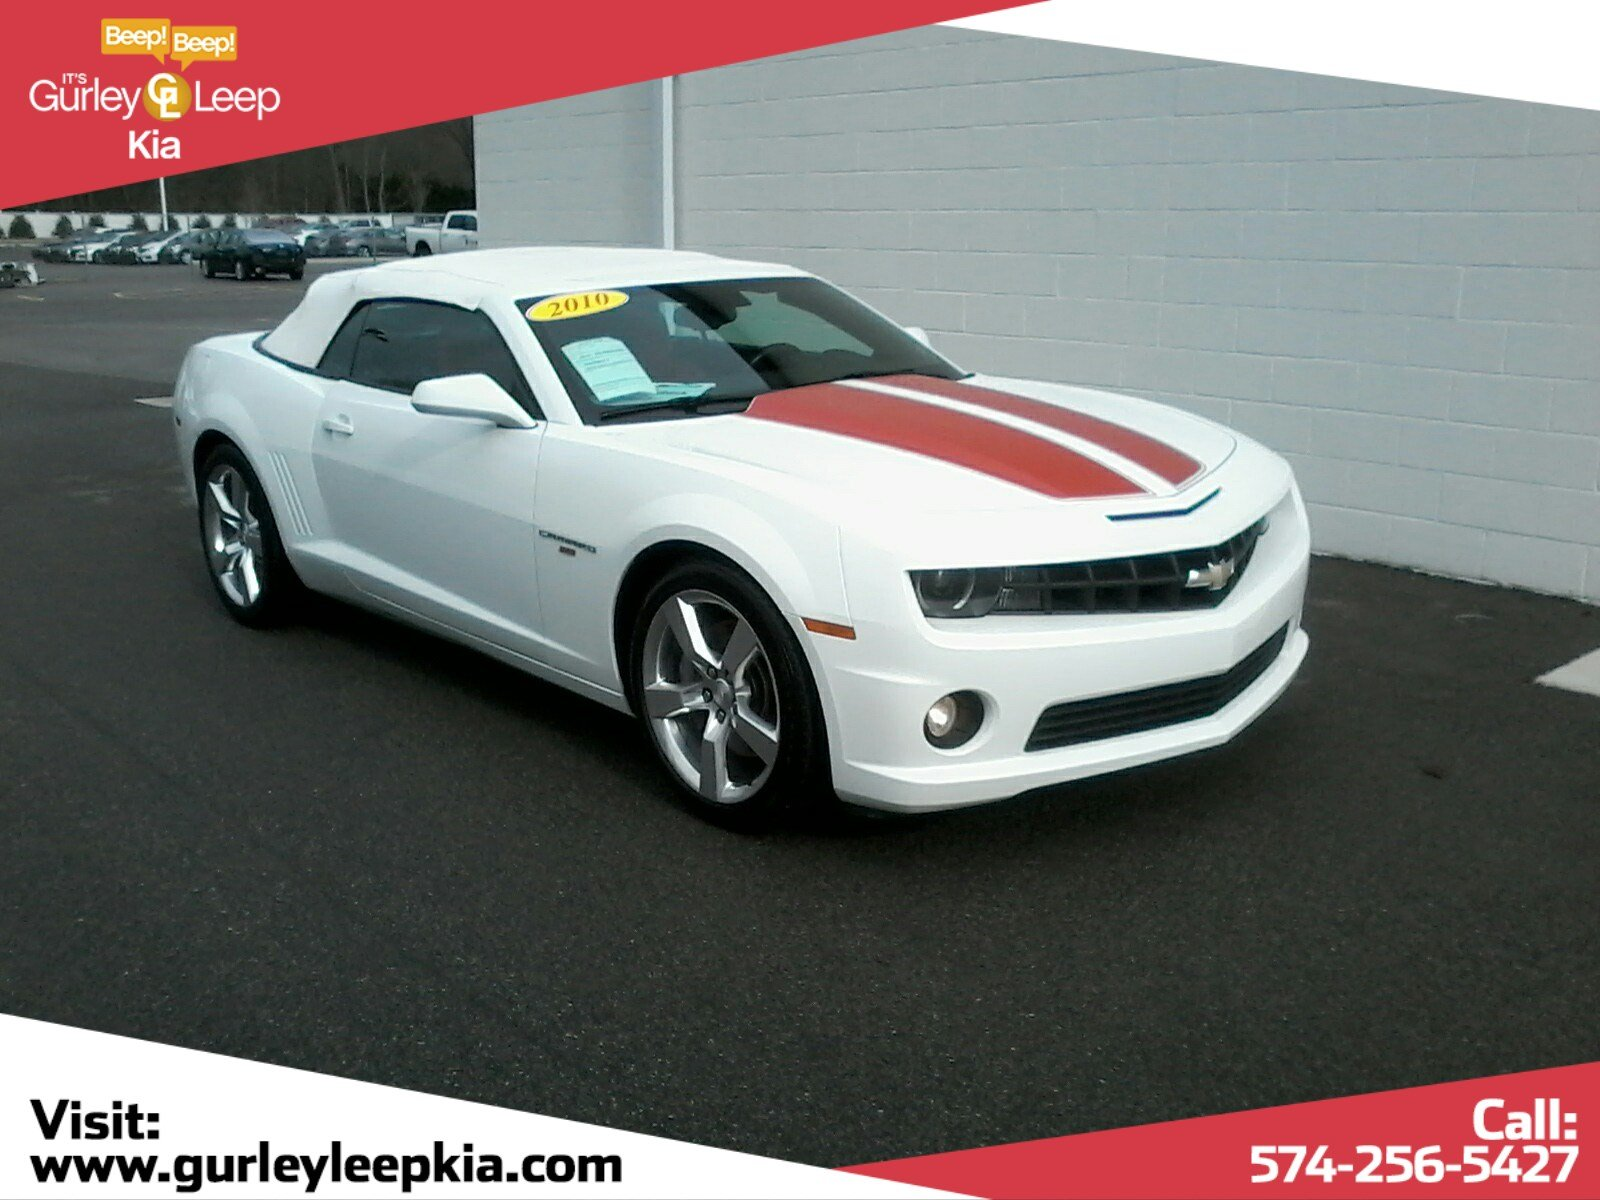 Pre-Owned 2010 Chevrolet Camaro 2SS